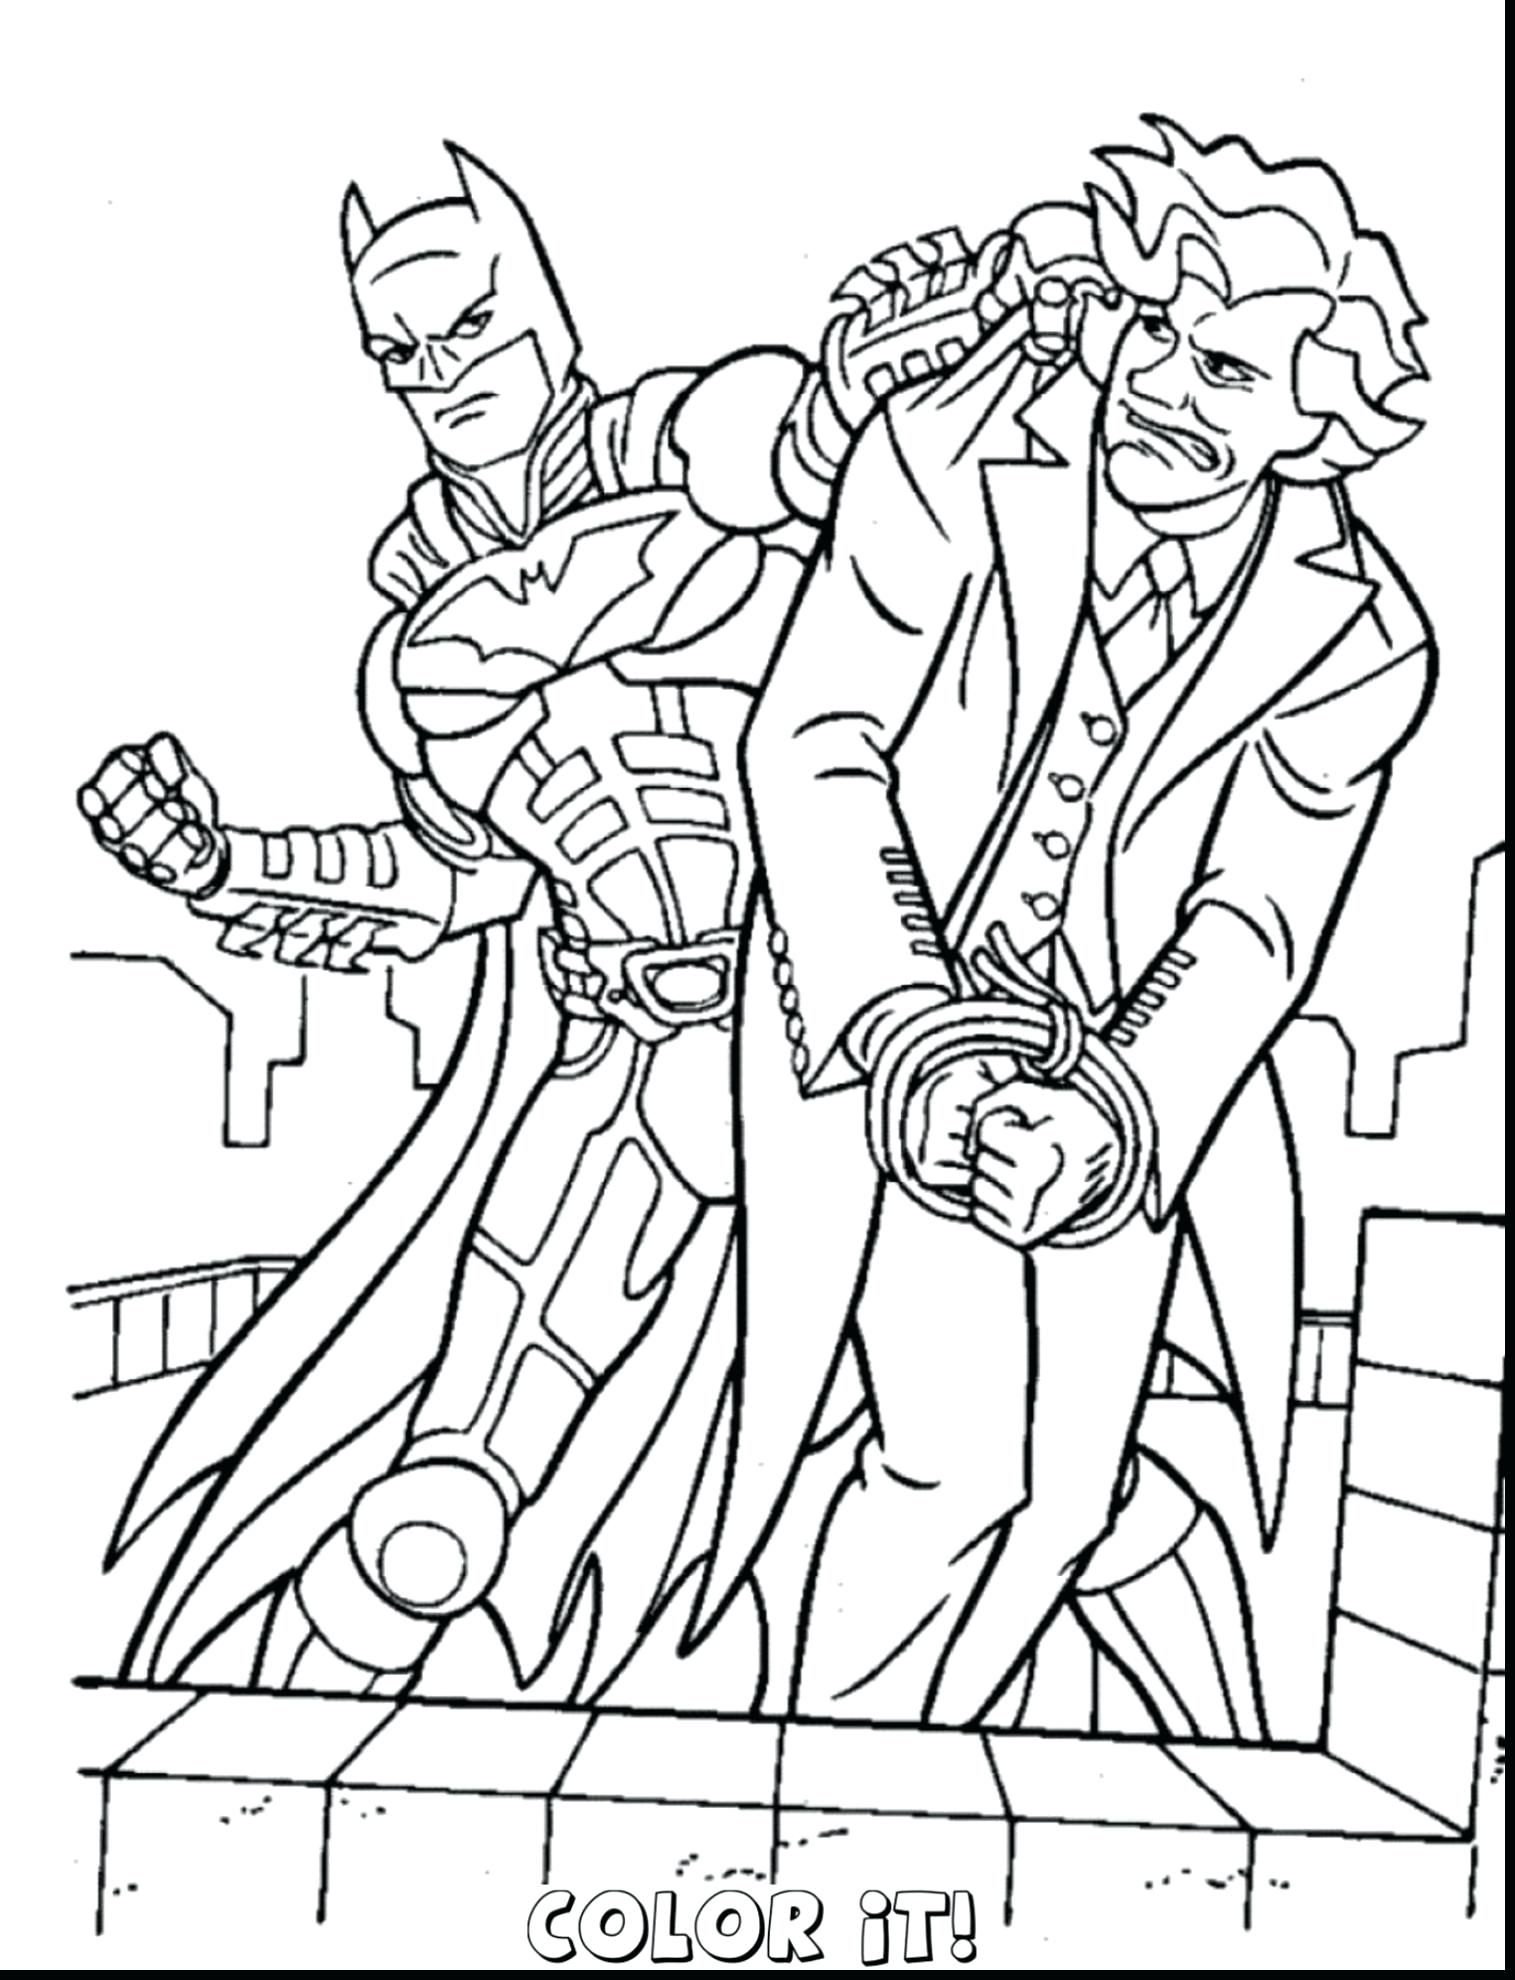 1515x1980 Batman And Spiderman Coloring Pages Free For Kids Colouring P On